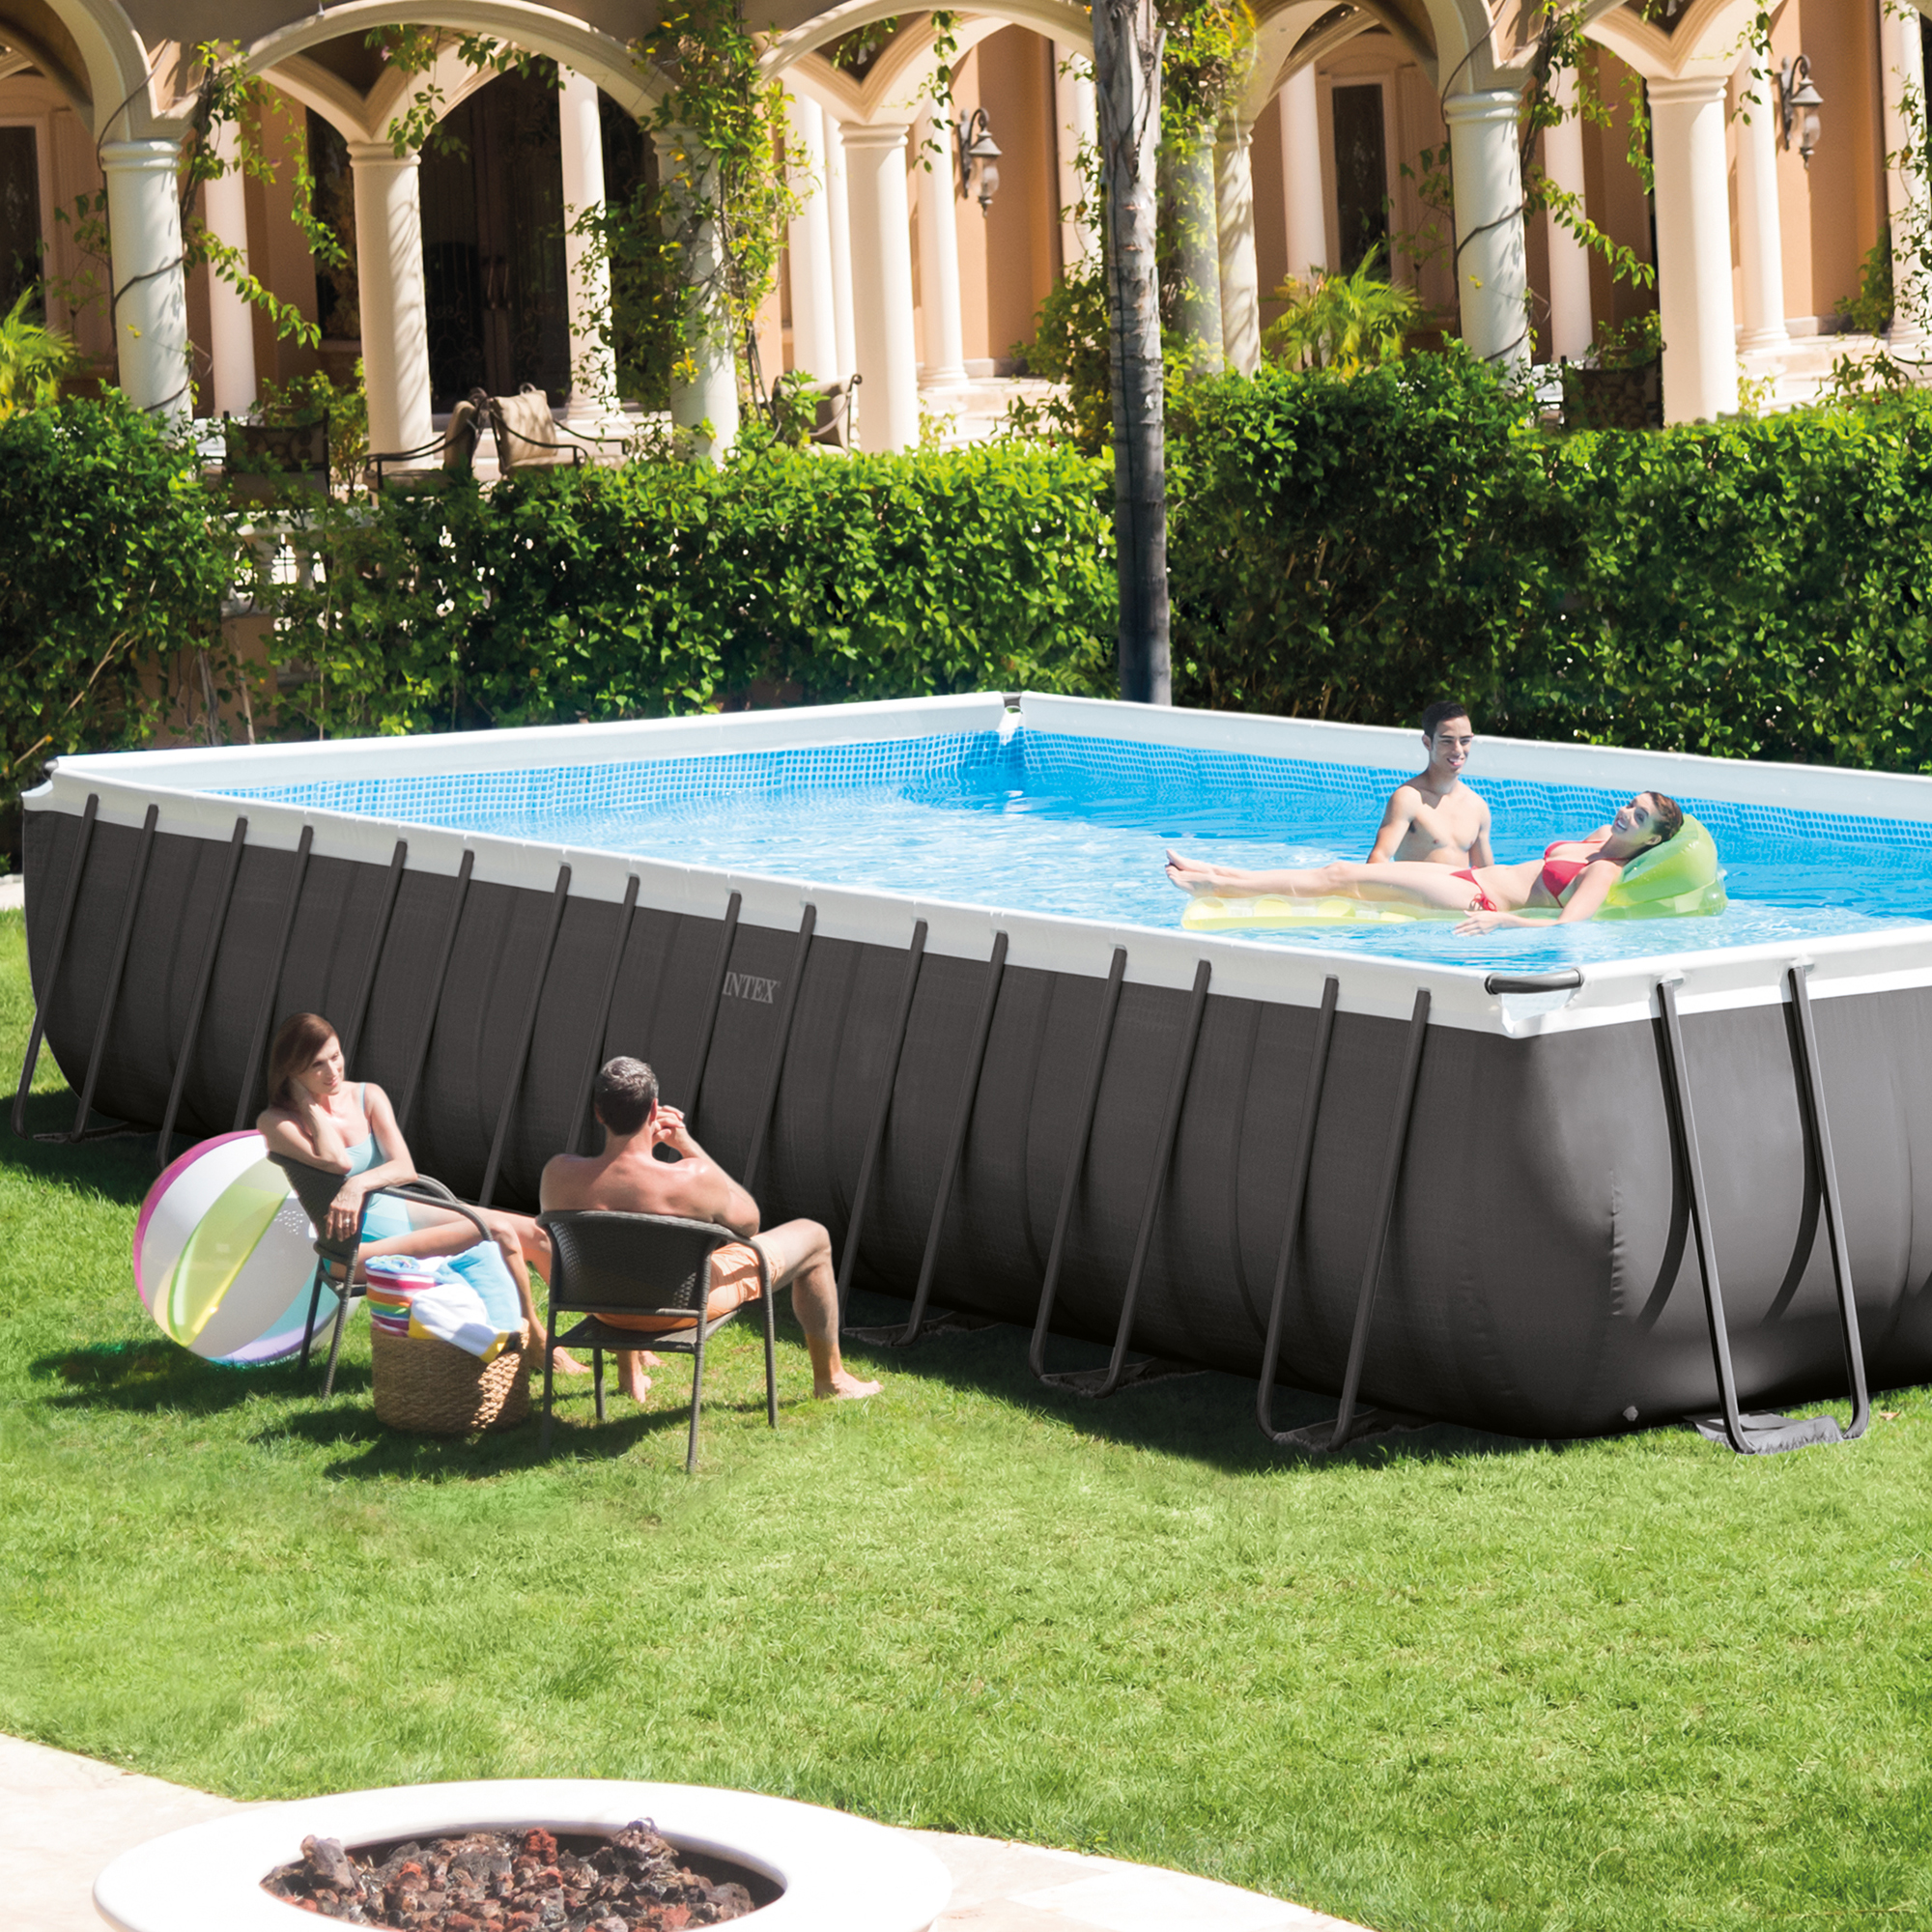 Intex 32 x 16 x 4 3 foot ultra frame rectangular pool set w pump and ladder ebay for A rectangular swimming pool is 6 ft deep